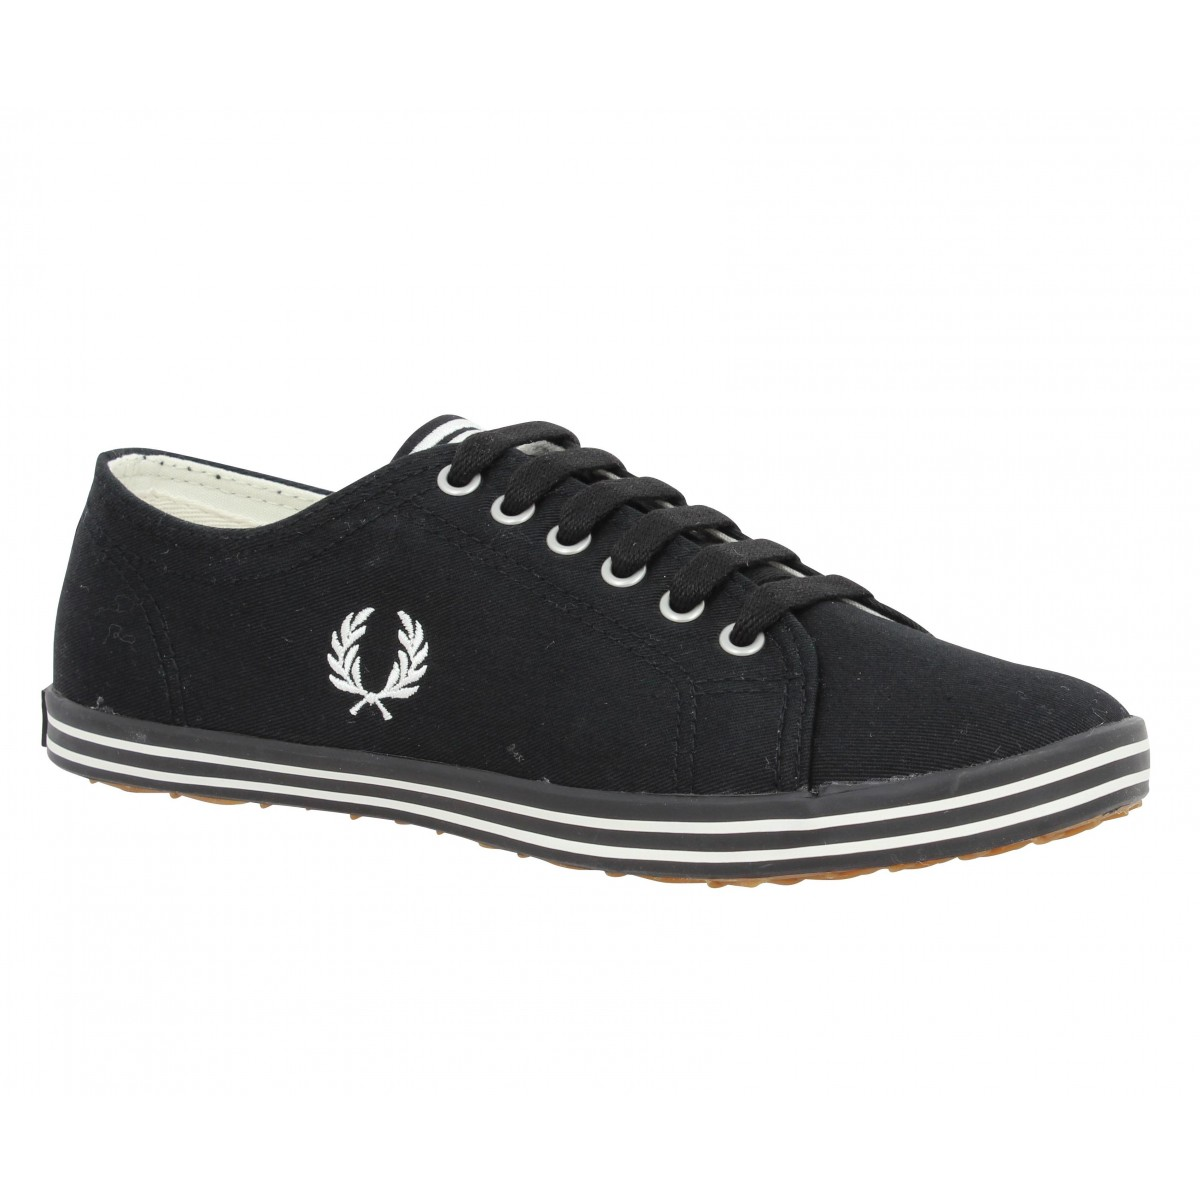 Baskets FRED PERRY Kingston toile Femme Noir + Blanc